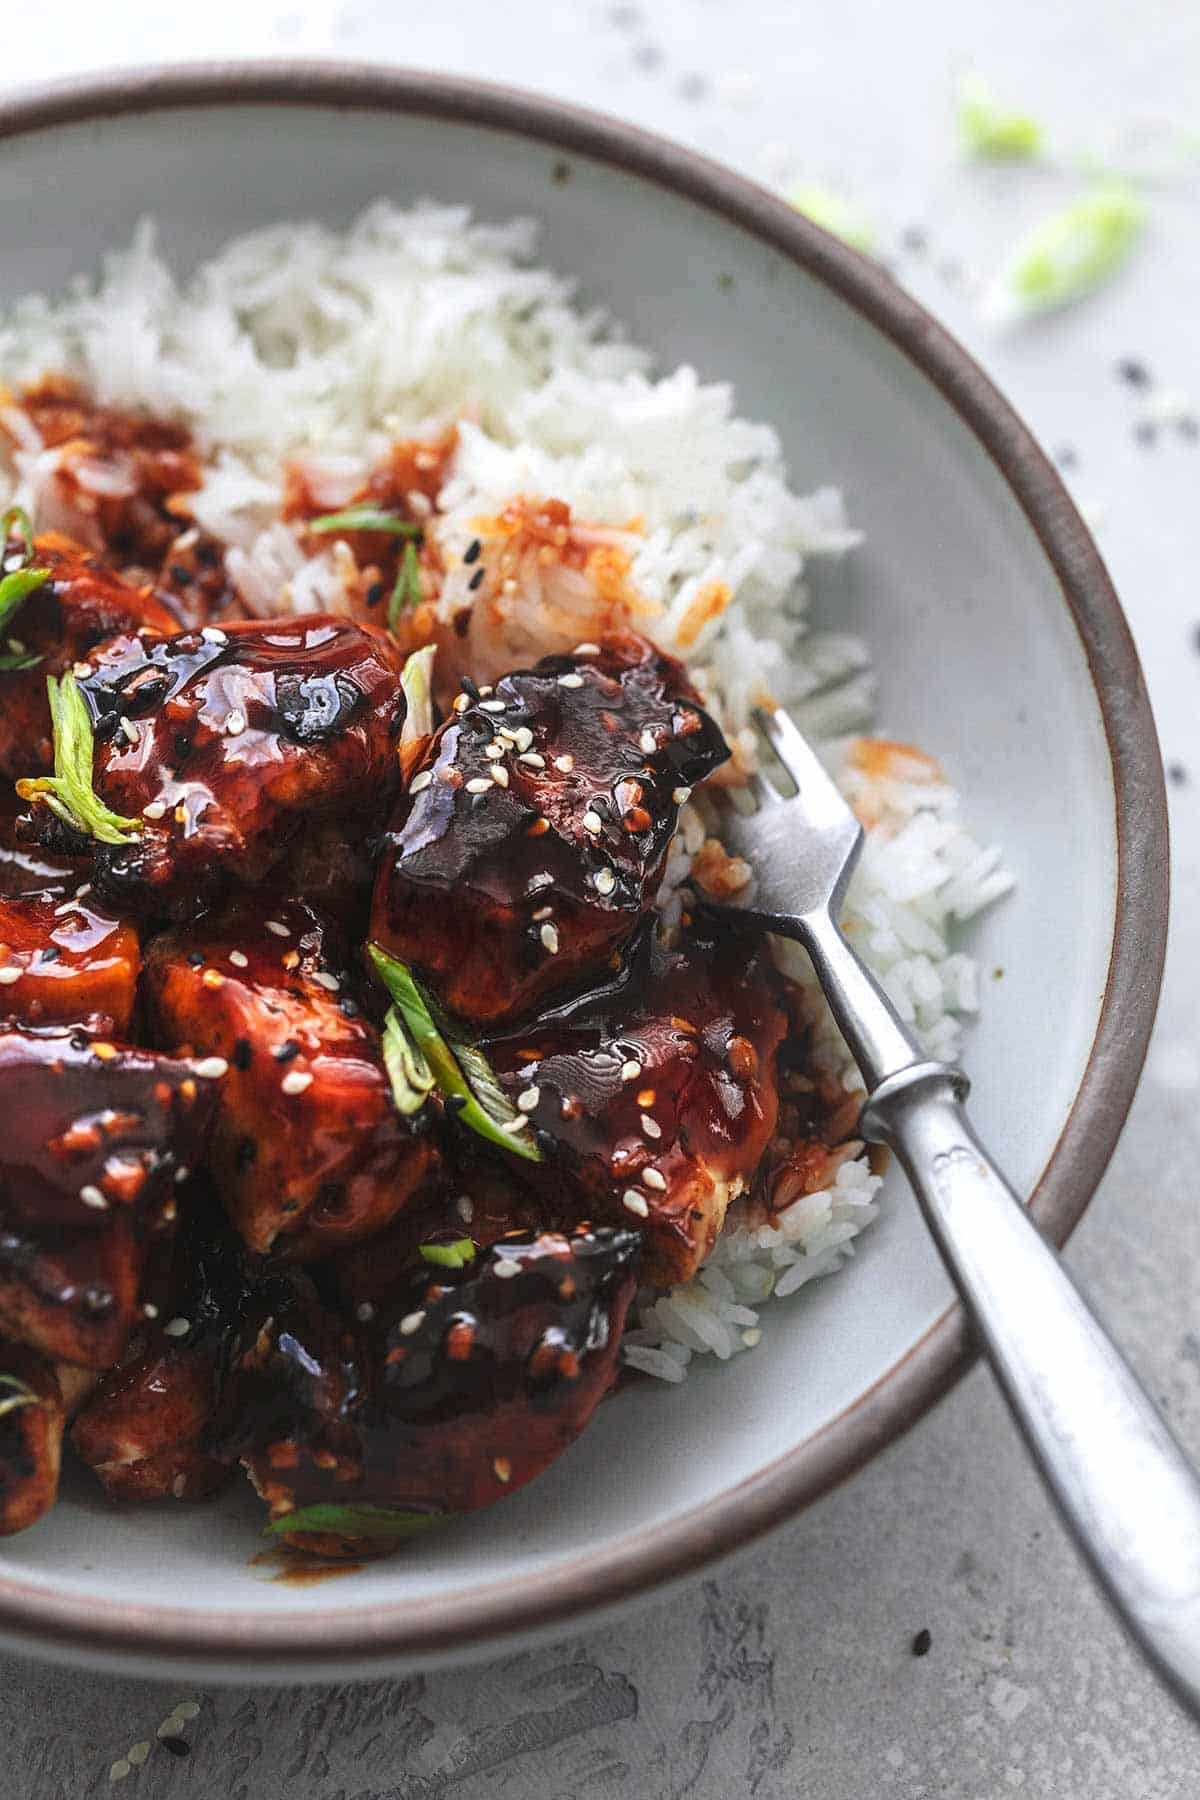 up close Korean bbq chicken with dark red sauce and fork in bowl